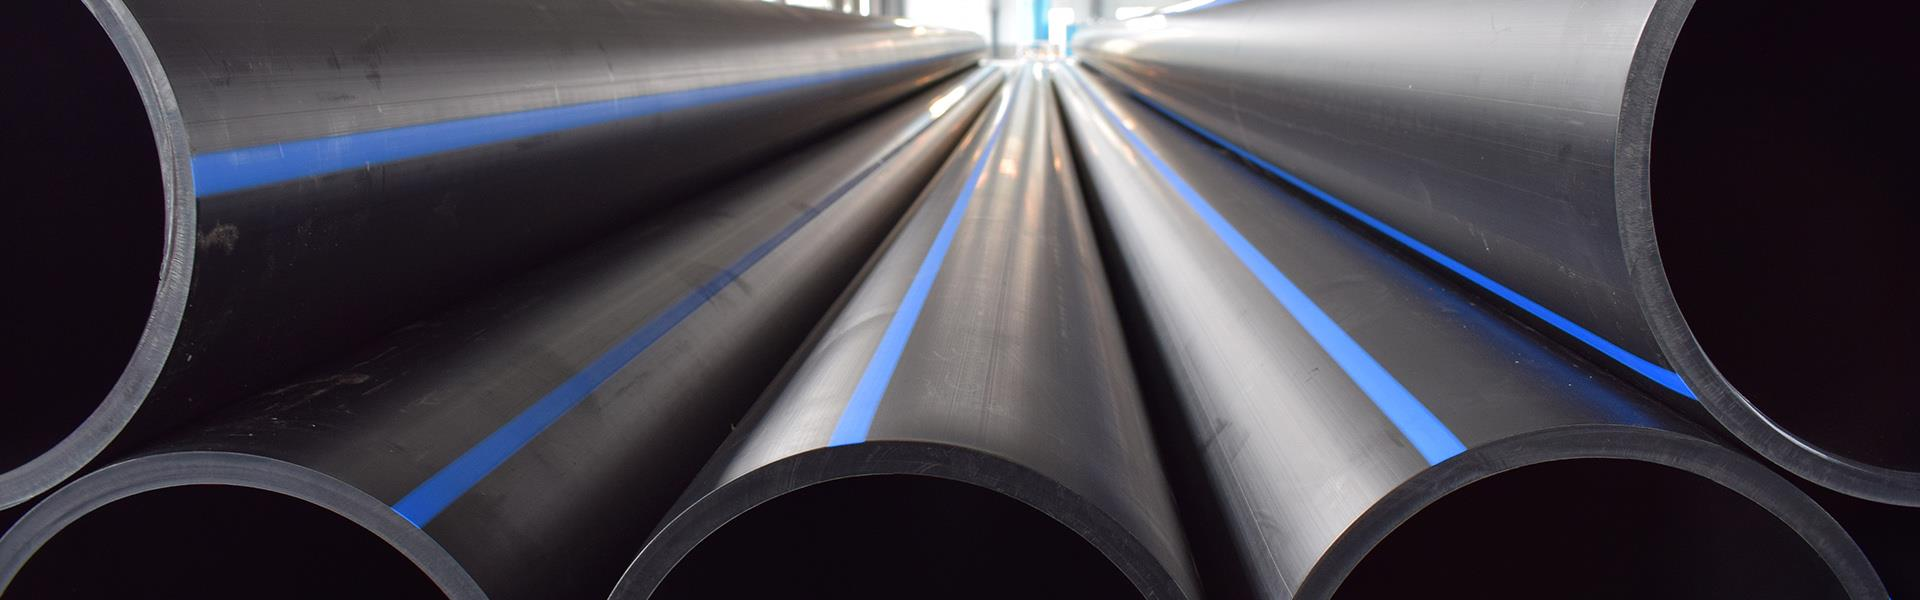 PE water supply pipe and PE drain pipe